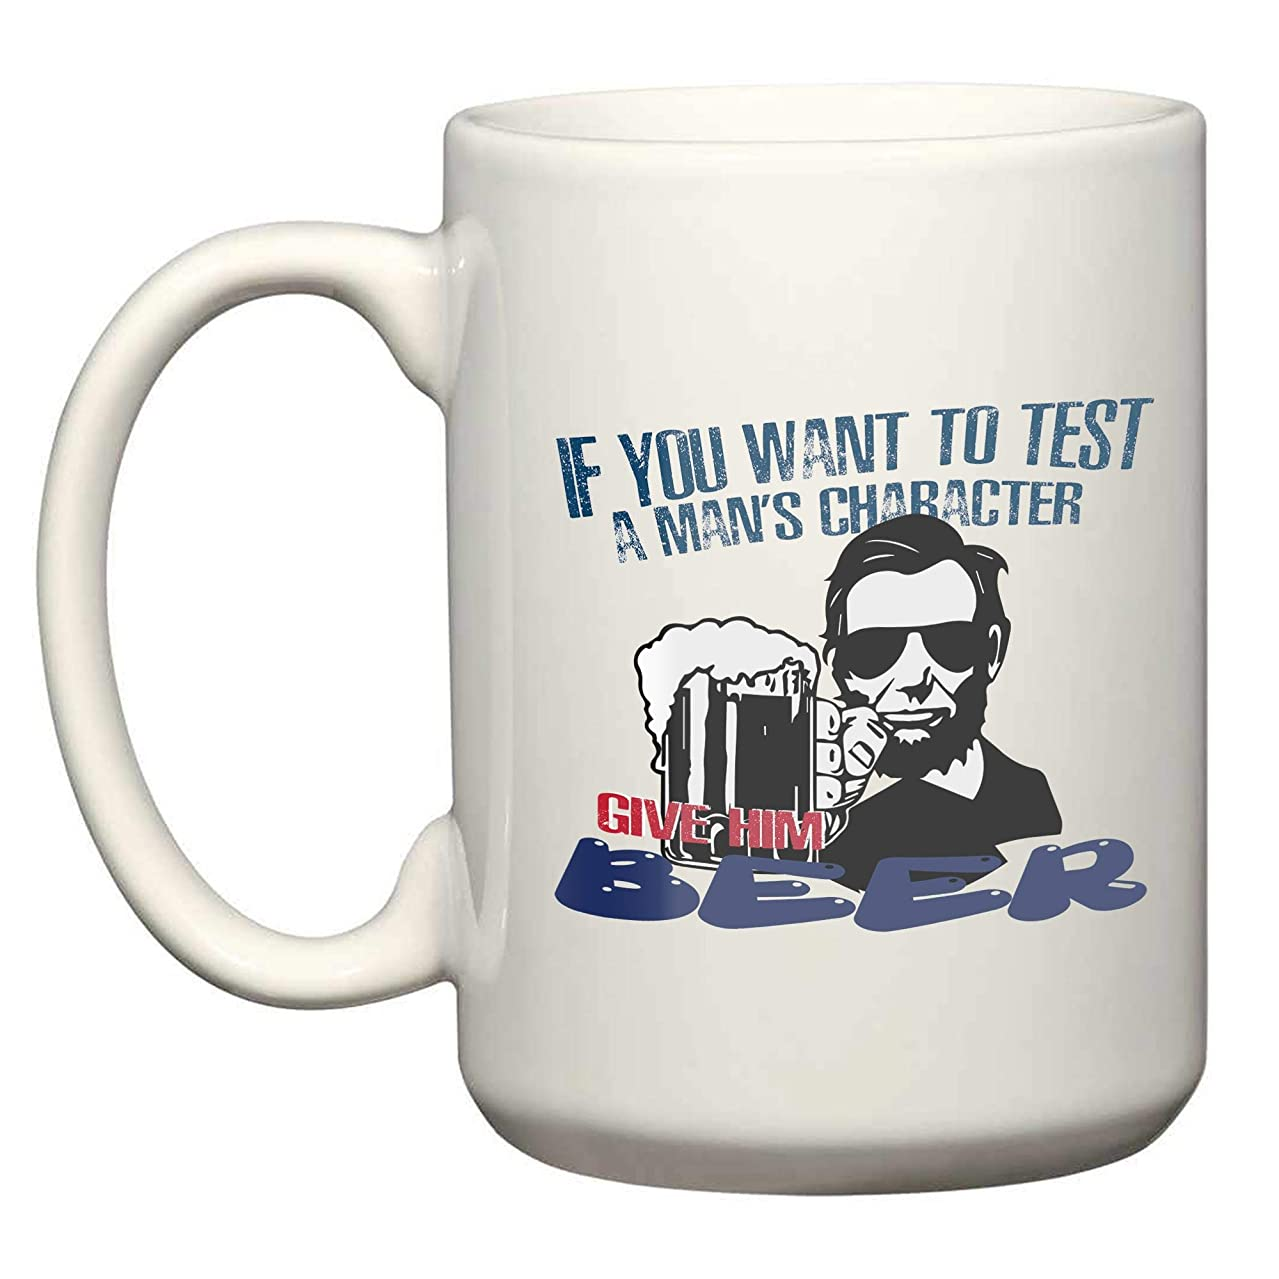 Abe Lincoln Beer 3 15 Oz White Coffee Mugs - Gifts for Independence Day